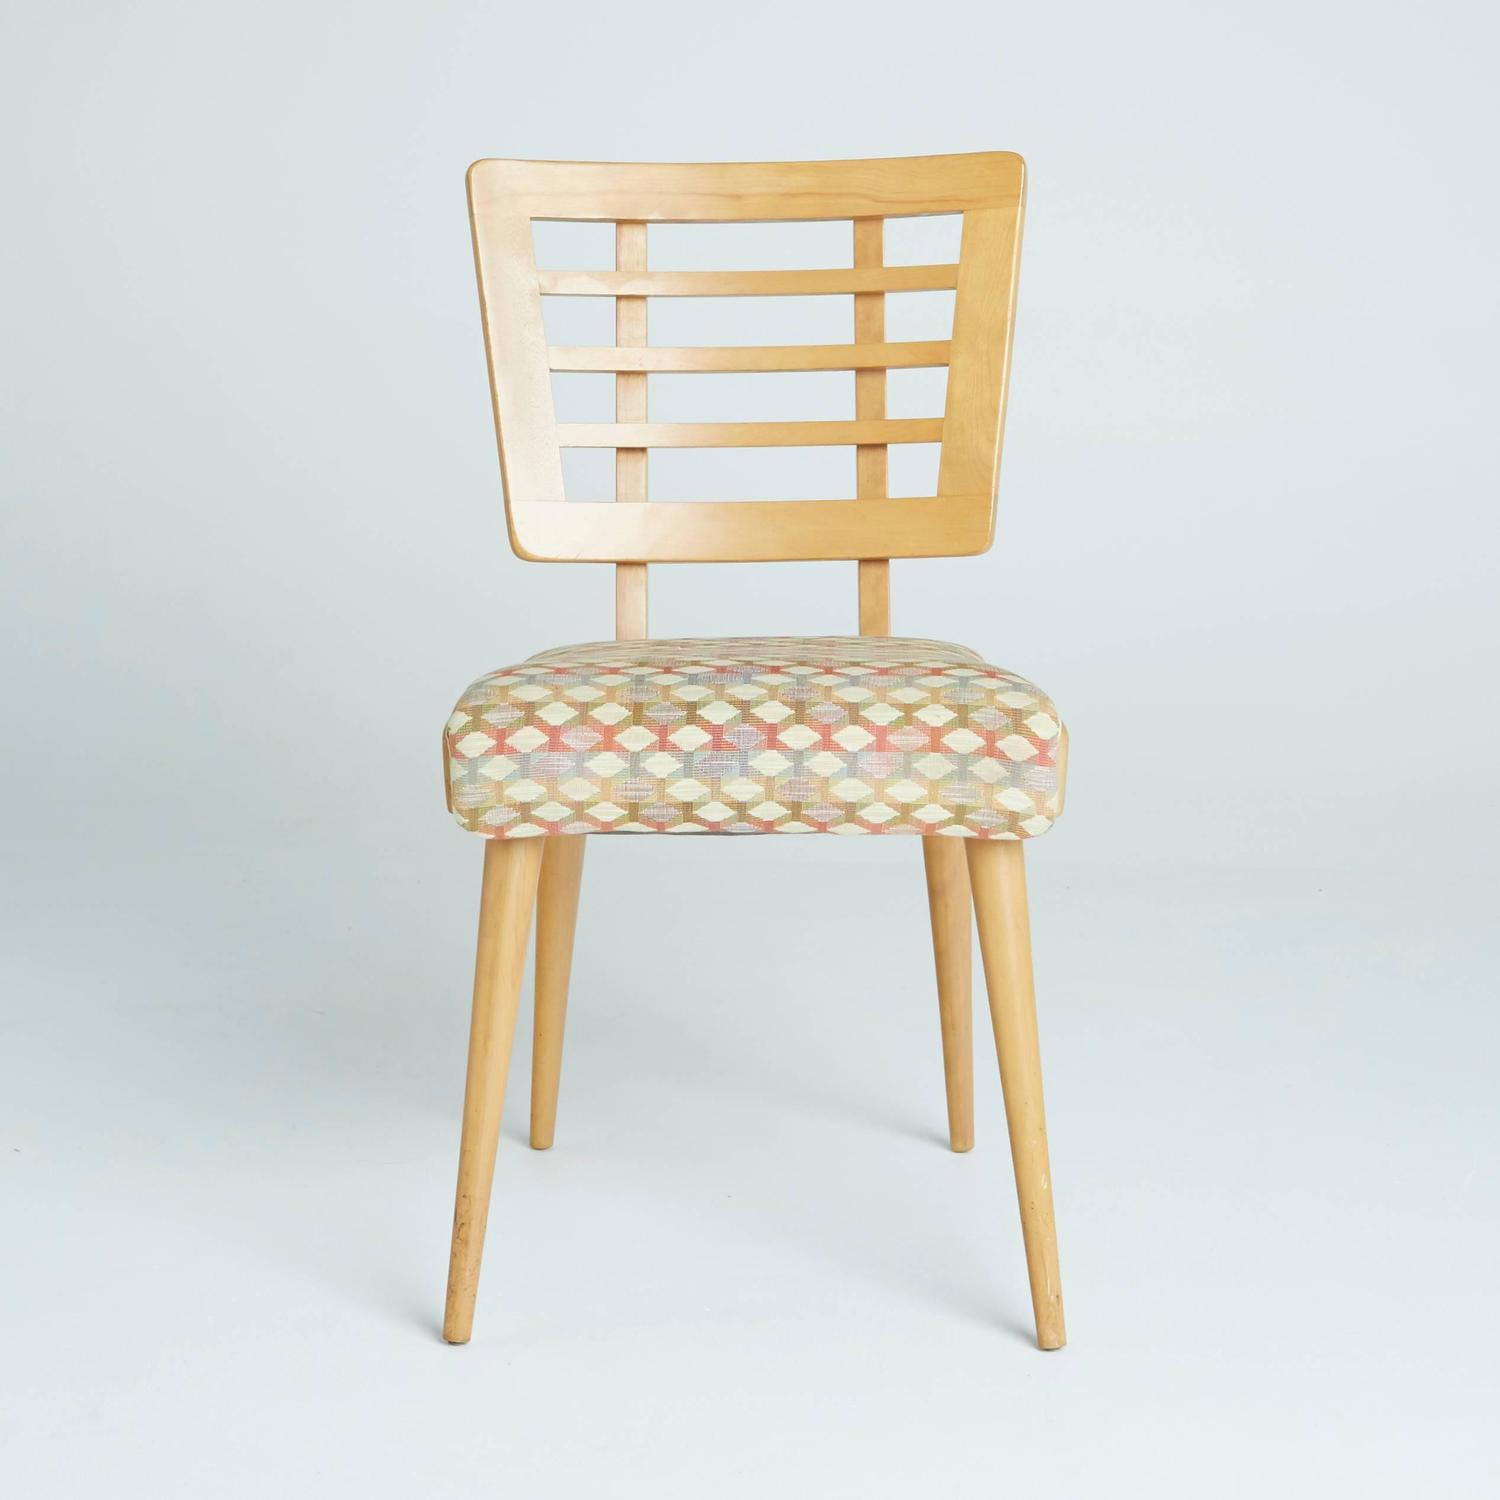 1950s American Modern Maple Dining Chairs at 1stdibs